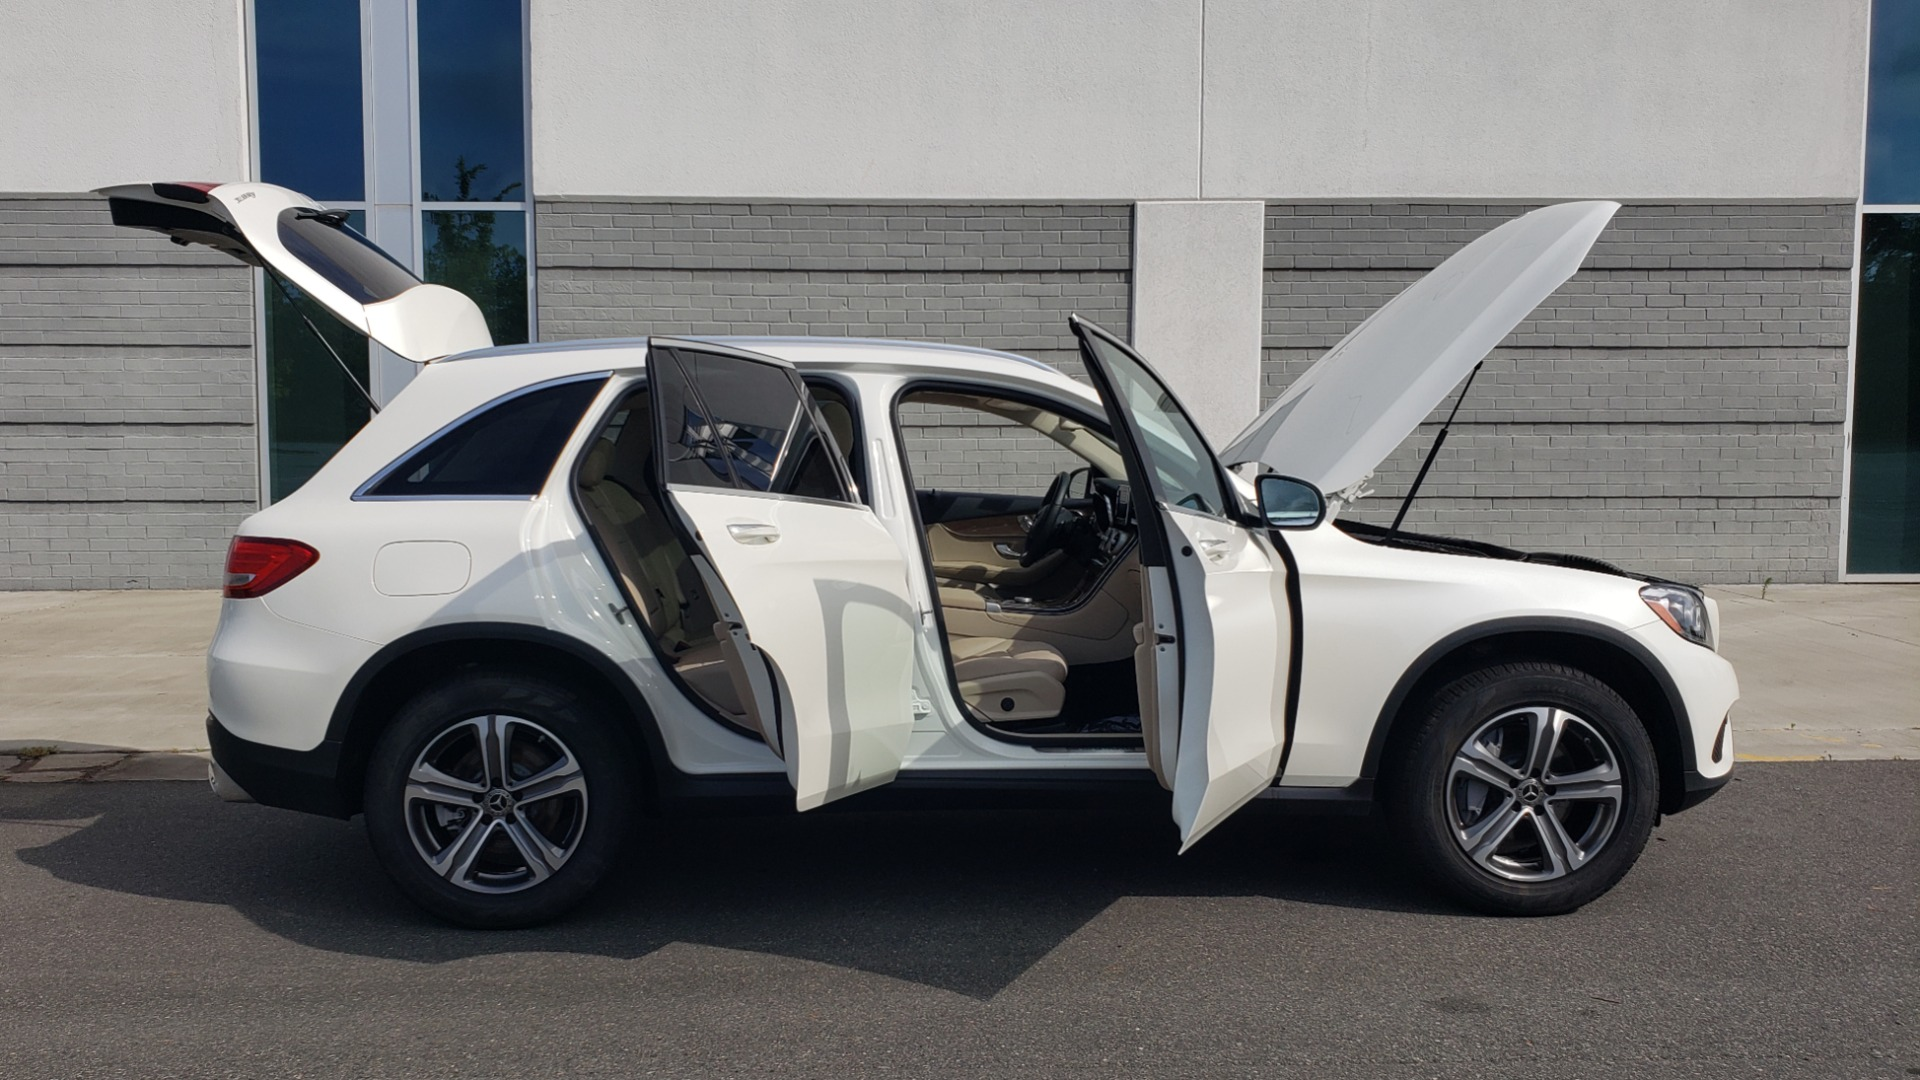 Used 2018 Mercedes-Benz GLC 300 4MATIC / PREM PKG / PANO-ROOF / APPLE / REARVIEW for sale $33,397 at Formula Imports in Charlotte NC 28227 12